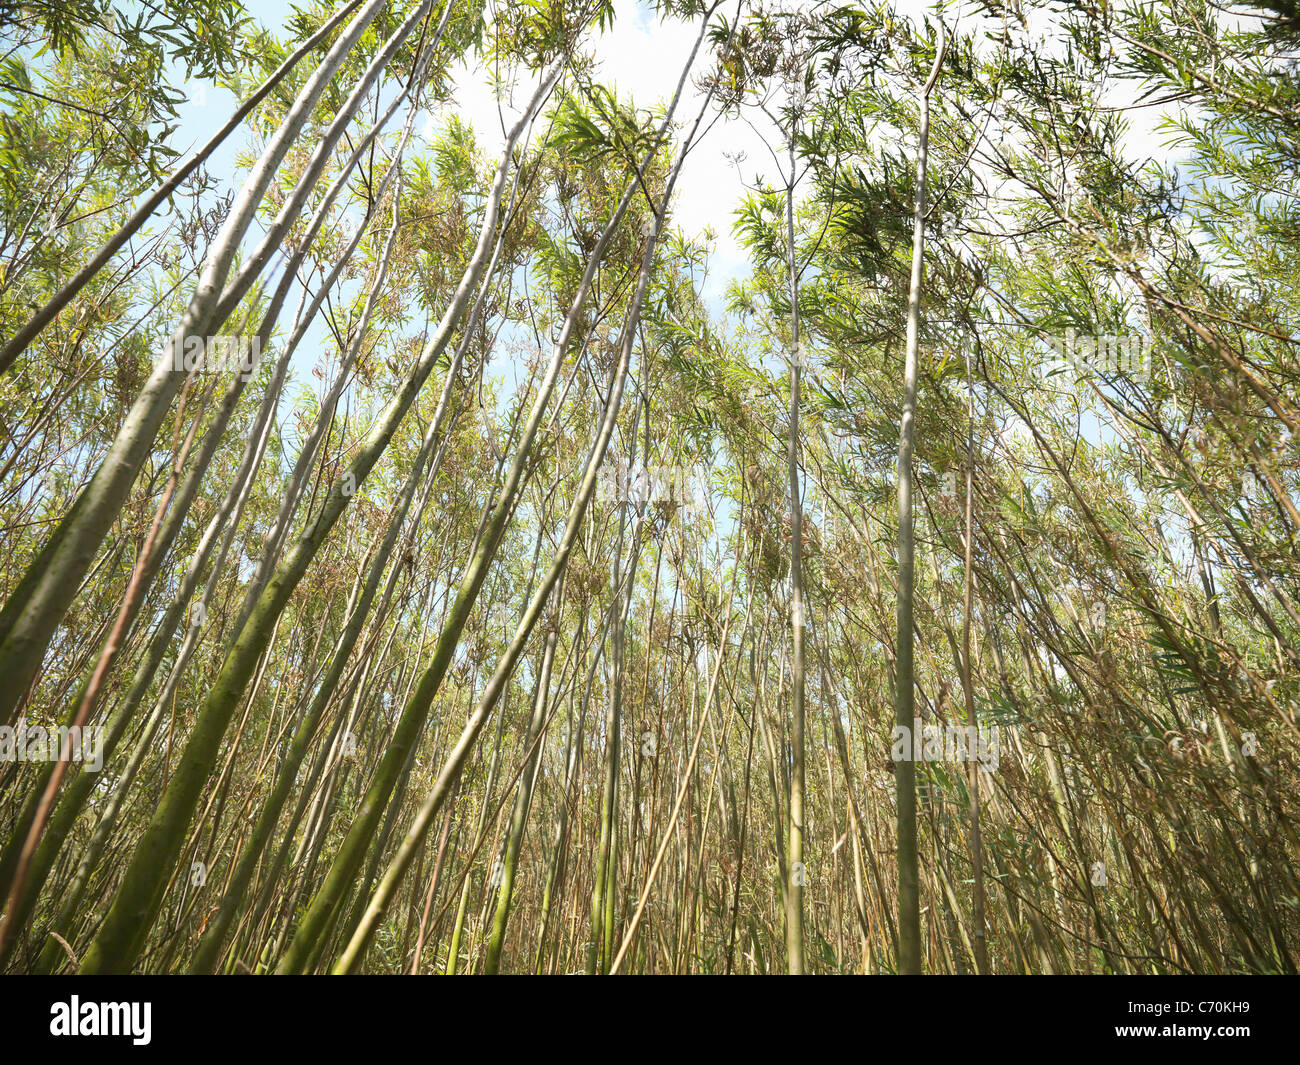 Willow biomass fuel growing outdoors - Stock Image